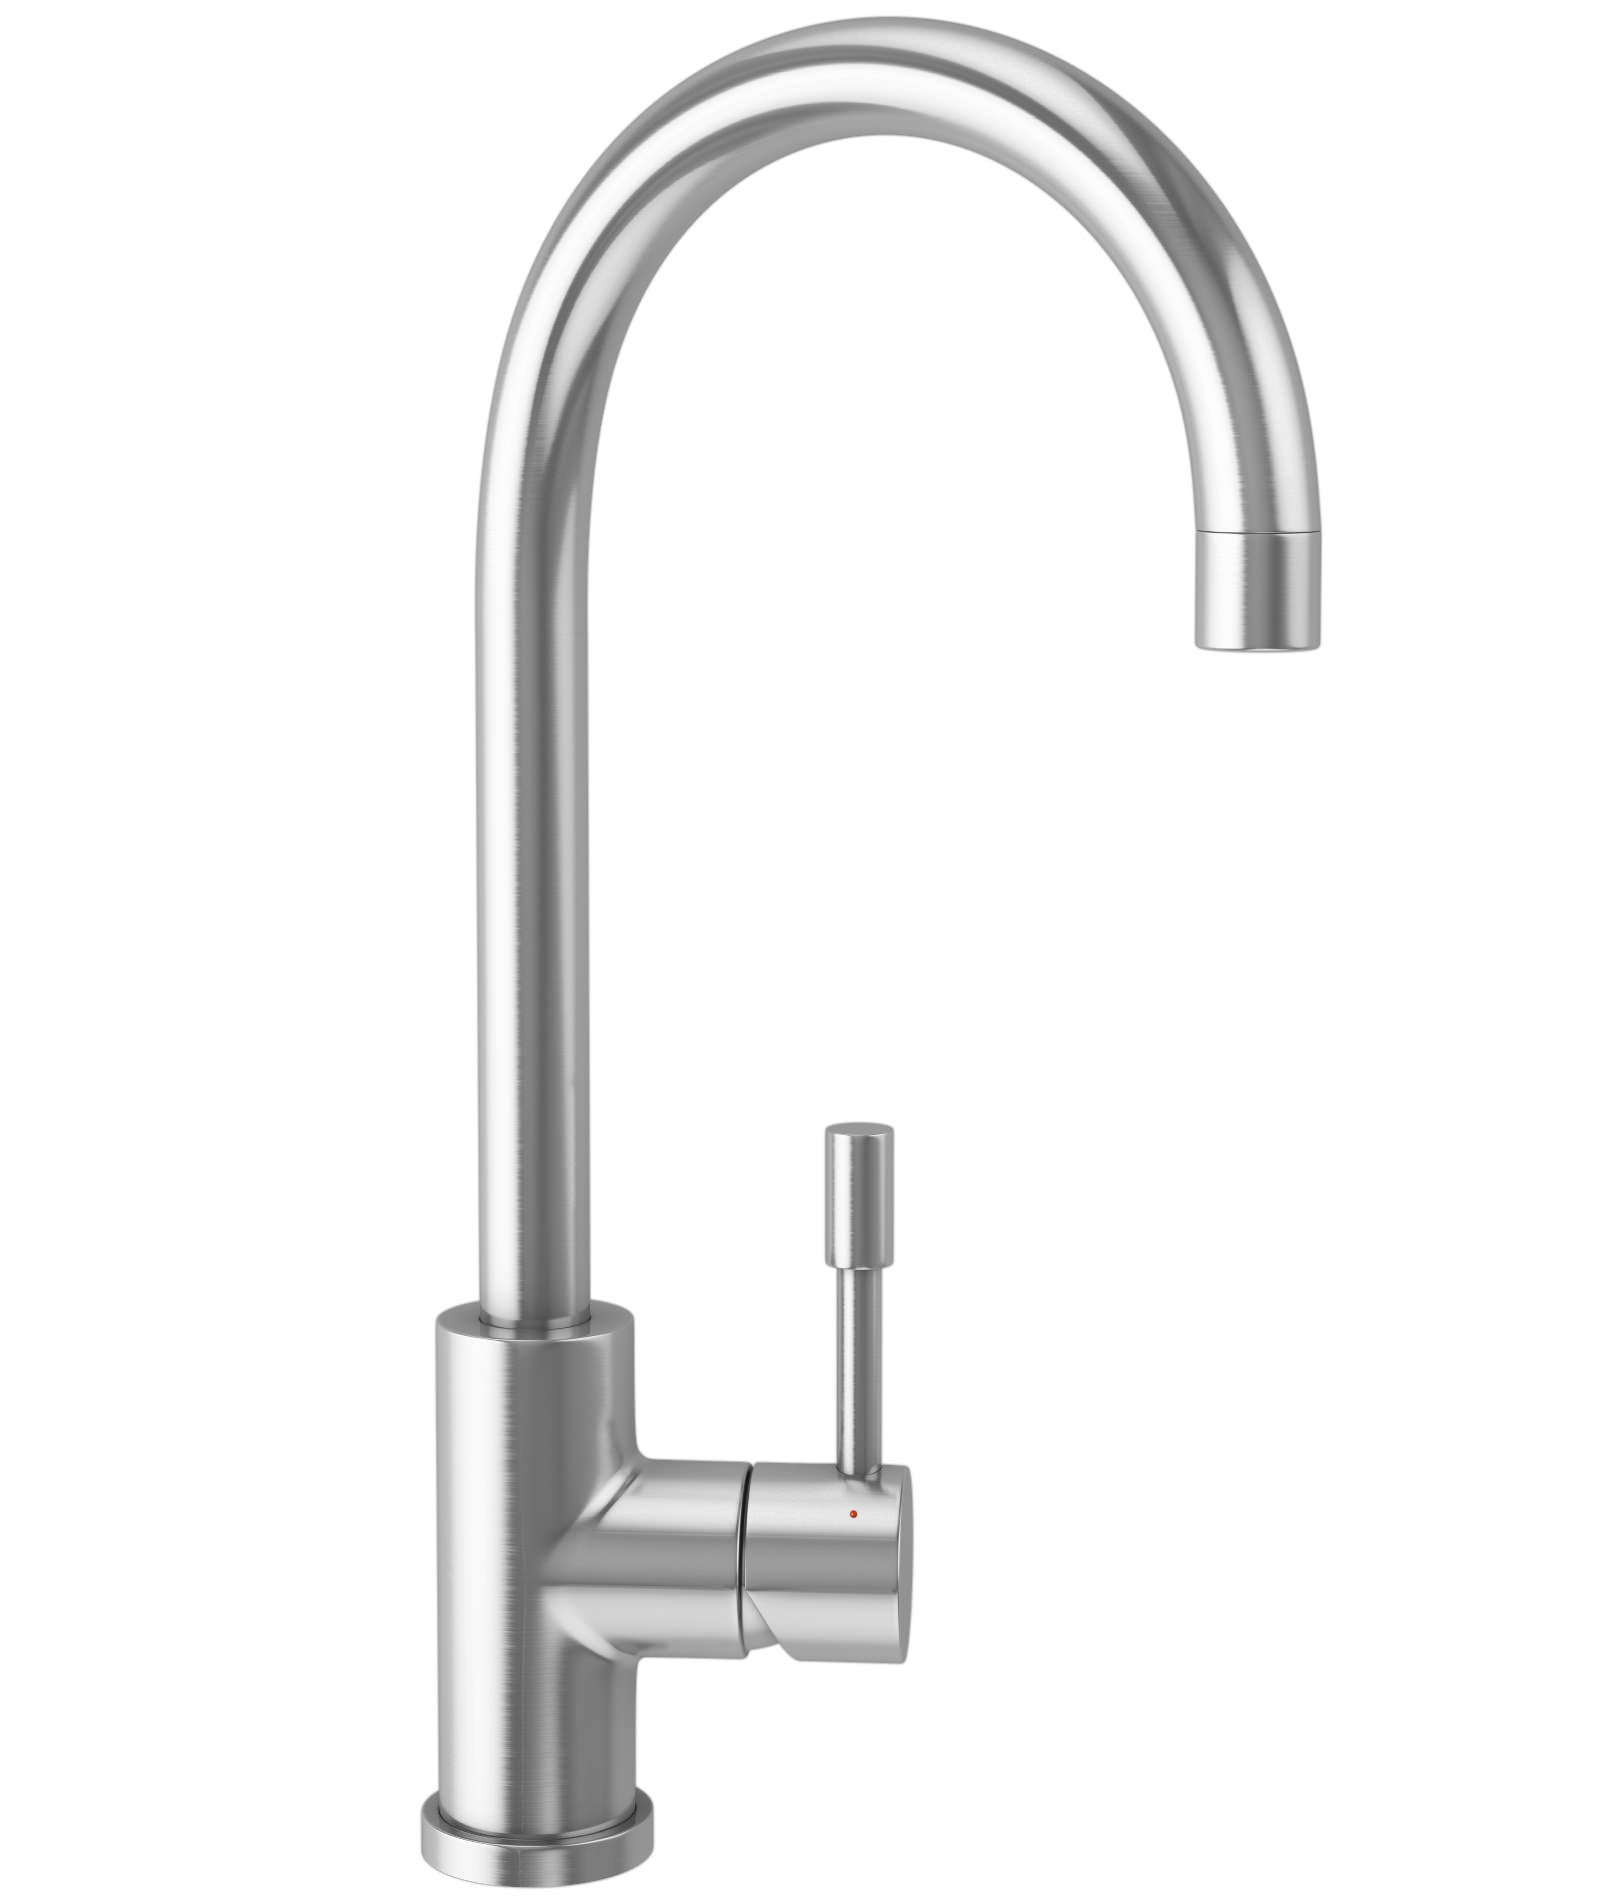 Franke Eos Kitchen Sink Mixer Tap Solid Stainless Steel 1150063568 focus for taps uk kitchen sinks for Your house